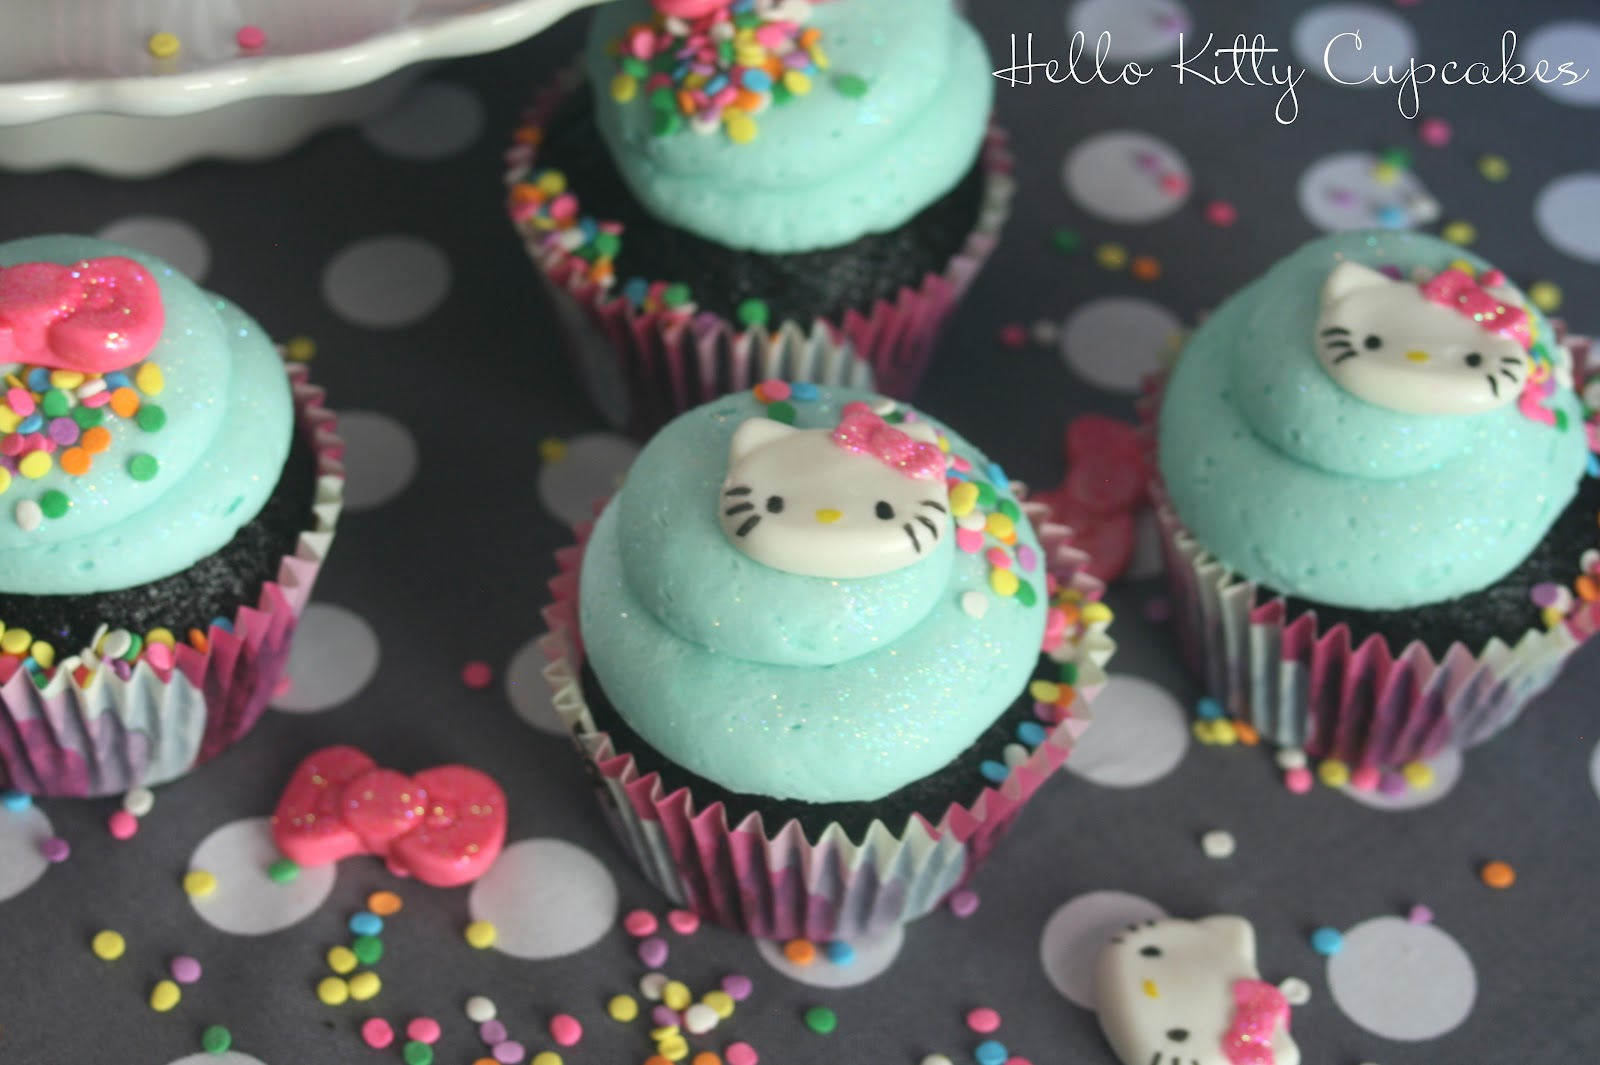 hello kitty birthday cupcakes